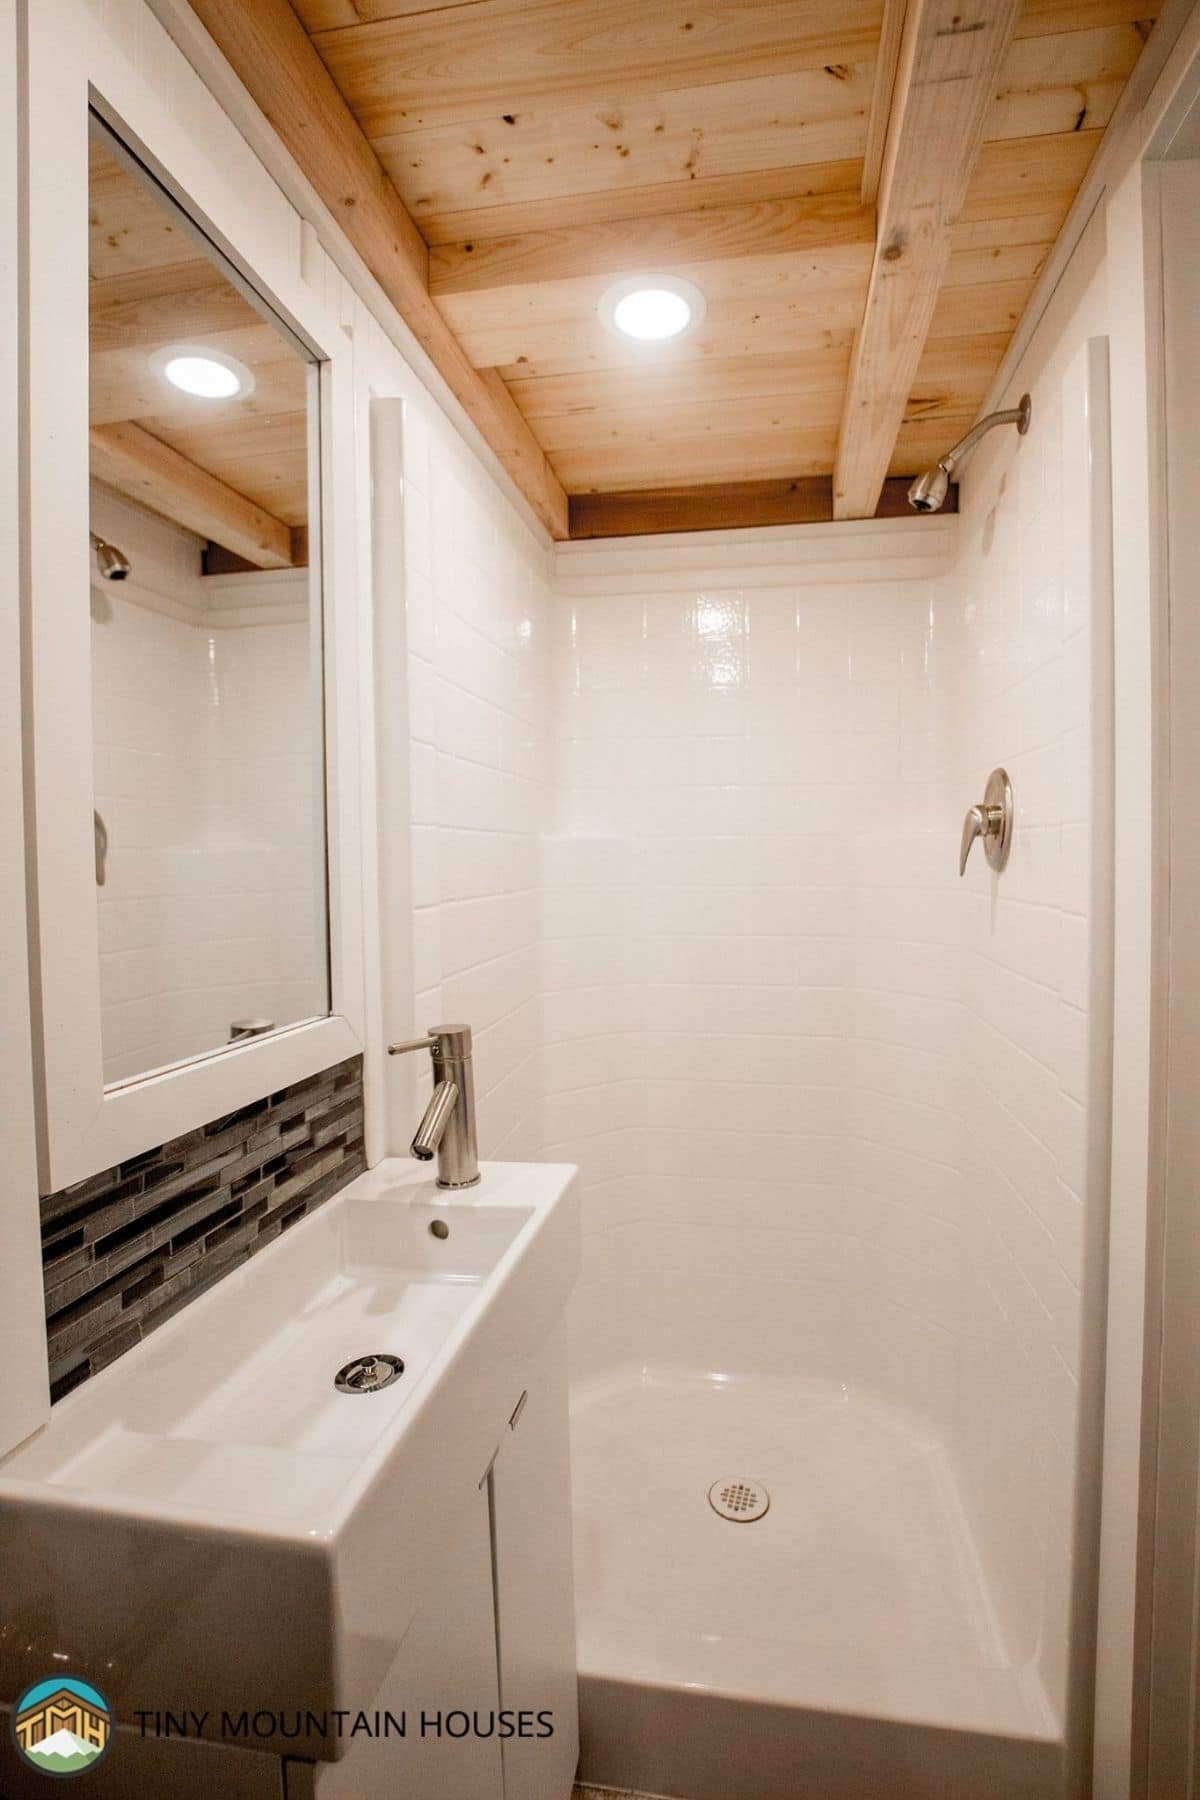 white shower stall next to white sink with blue and gray tile backsplash